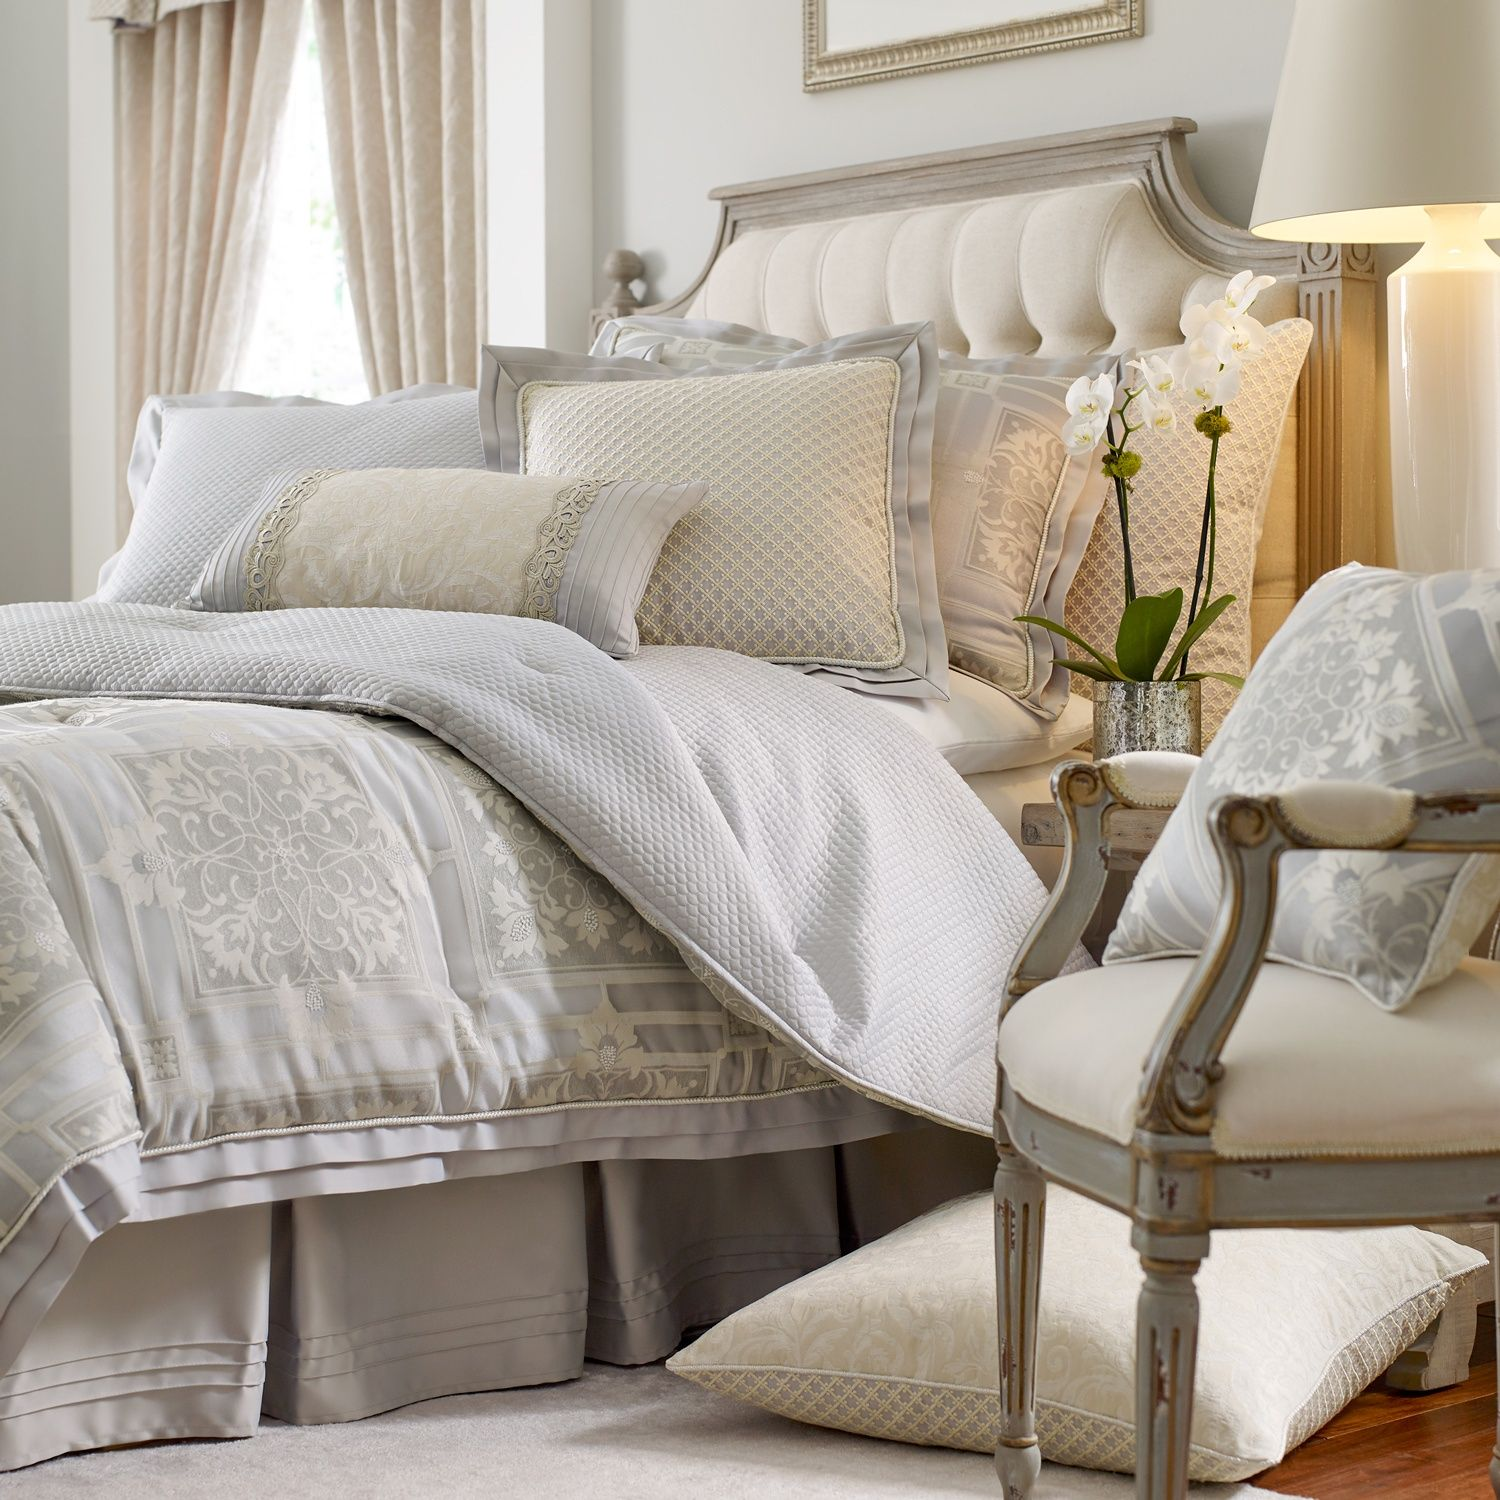 the rowling bedding collection by croscill couture features an the rowling bedding collection by croscill couture features an architectural style type medallion jacquard pattern